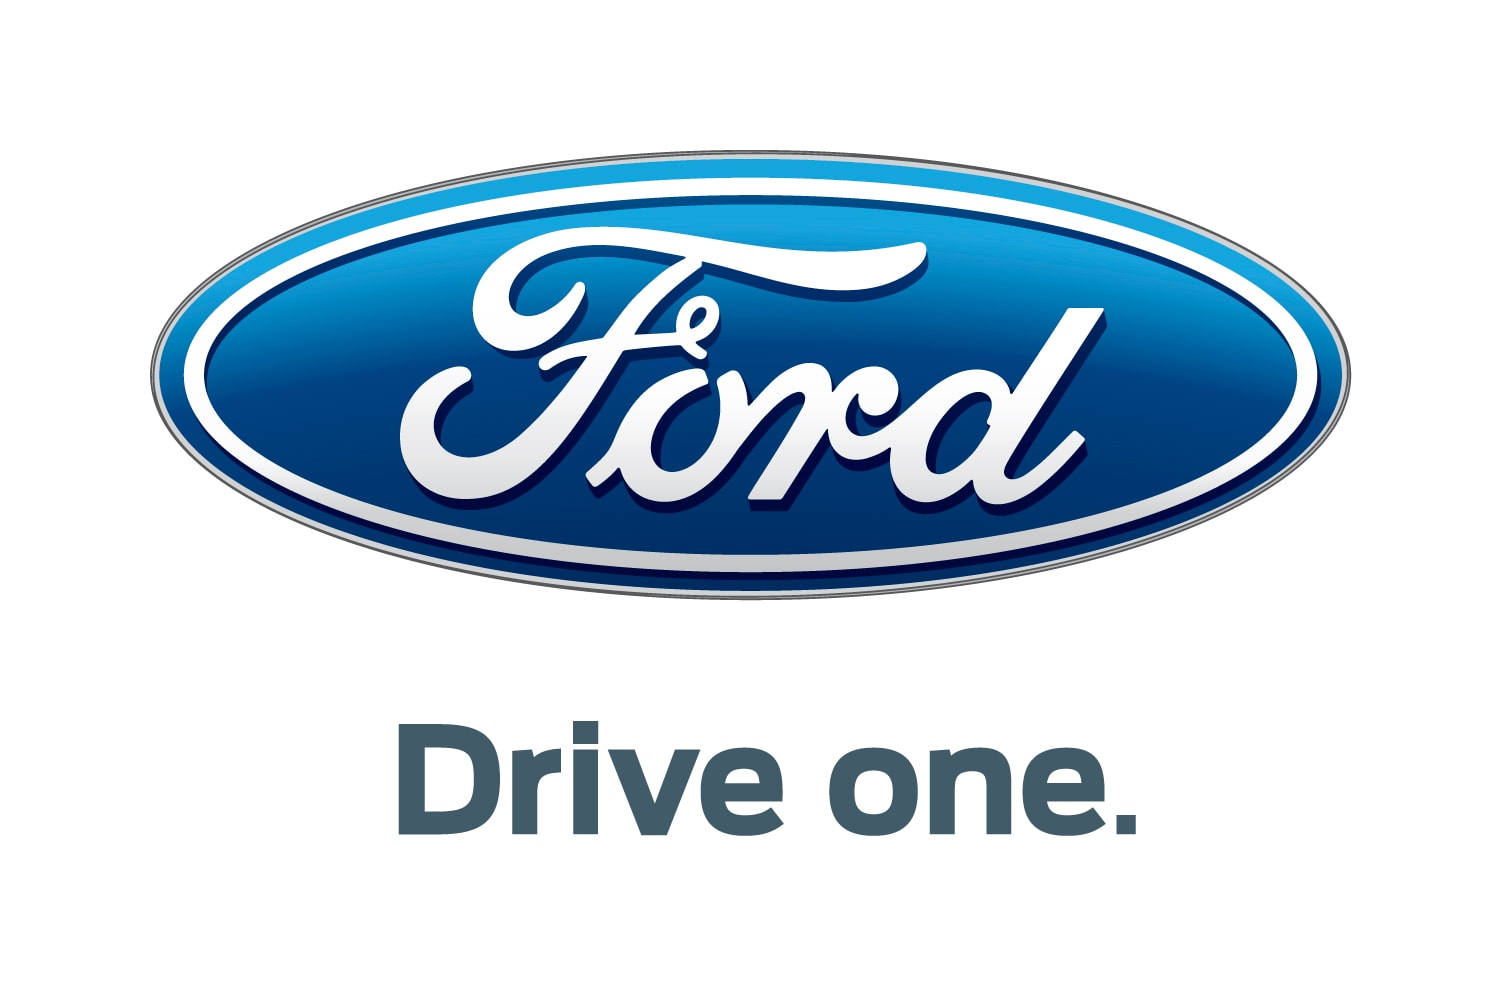 Tickets meet and greet passes to american idol live ford motor company has been a proud sponsor of american idol for the past ten seasons and will continue the relationship this summer to supportthe american m4hsunfo